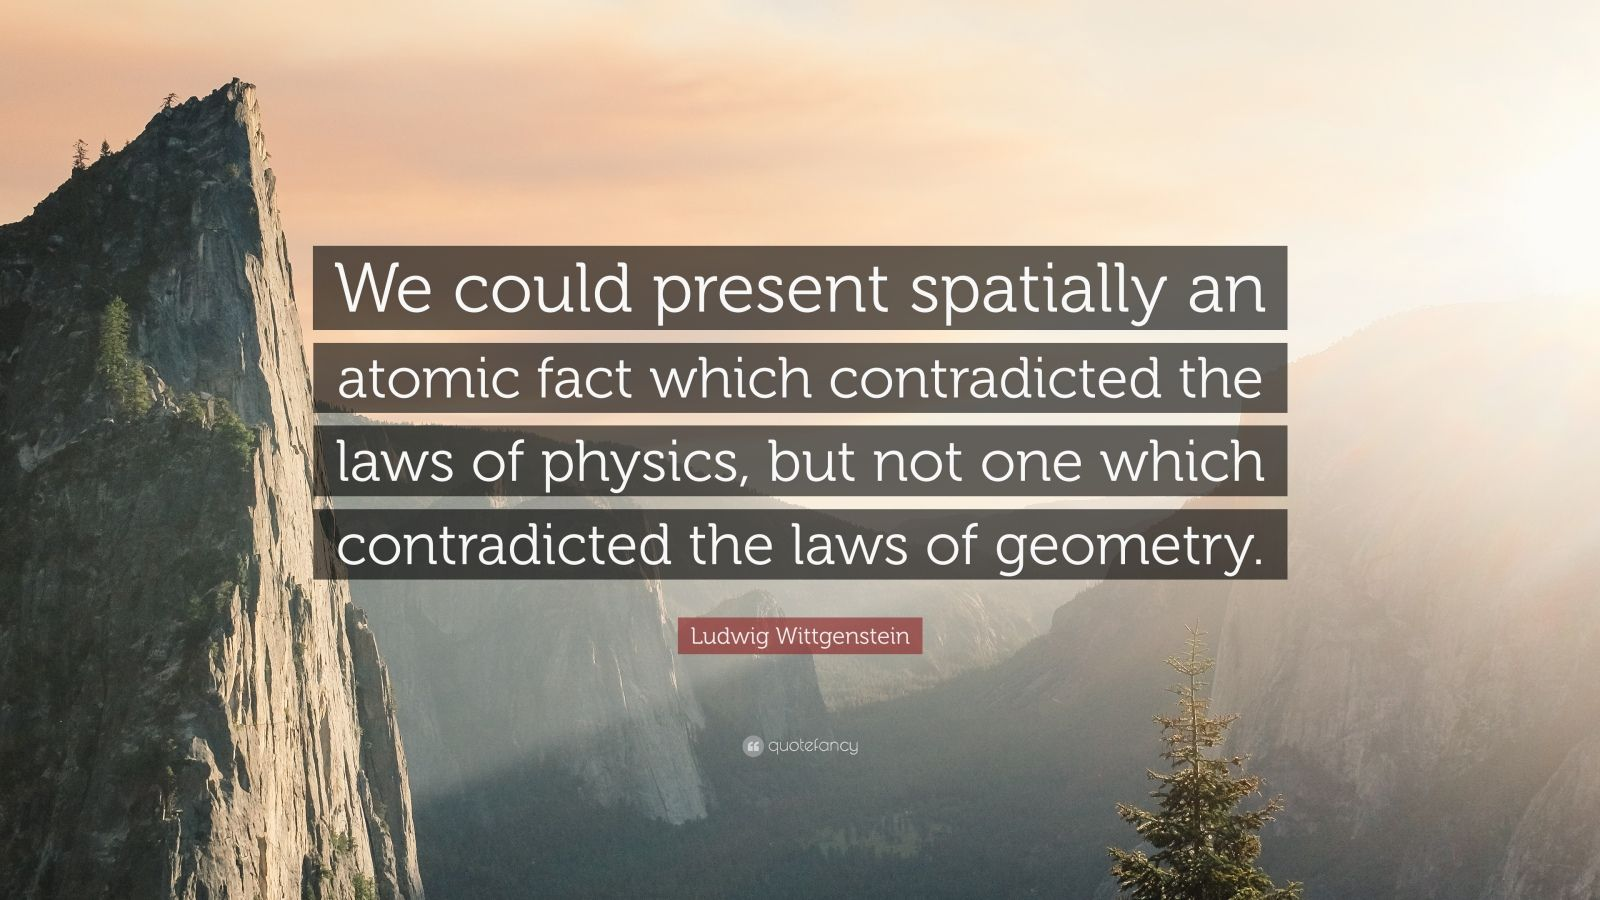 """Ludwig Wittgenstein Quote: """"We could present spatially an atomic fact which contradicted the laws of physics, but not one which contradicted the laws of geometry."""""""